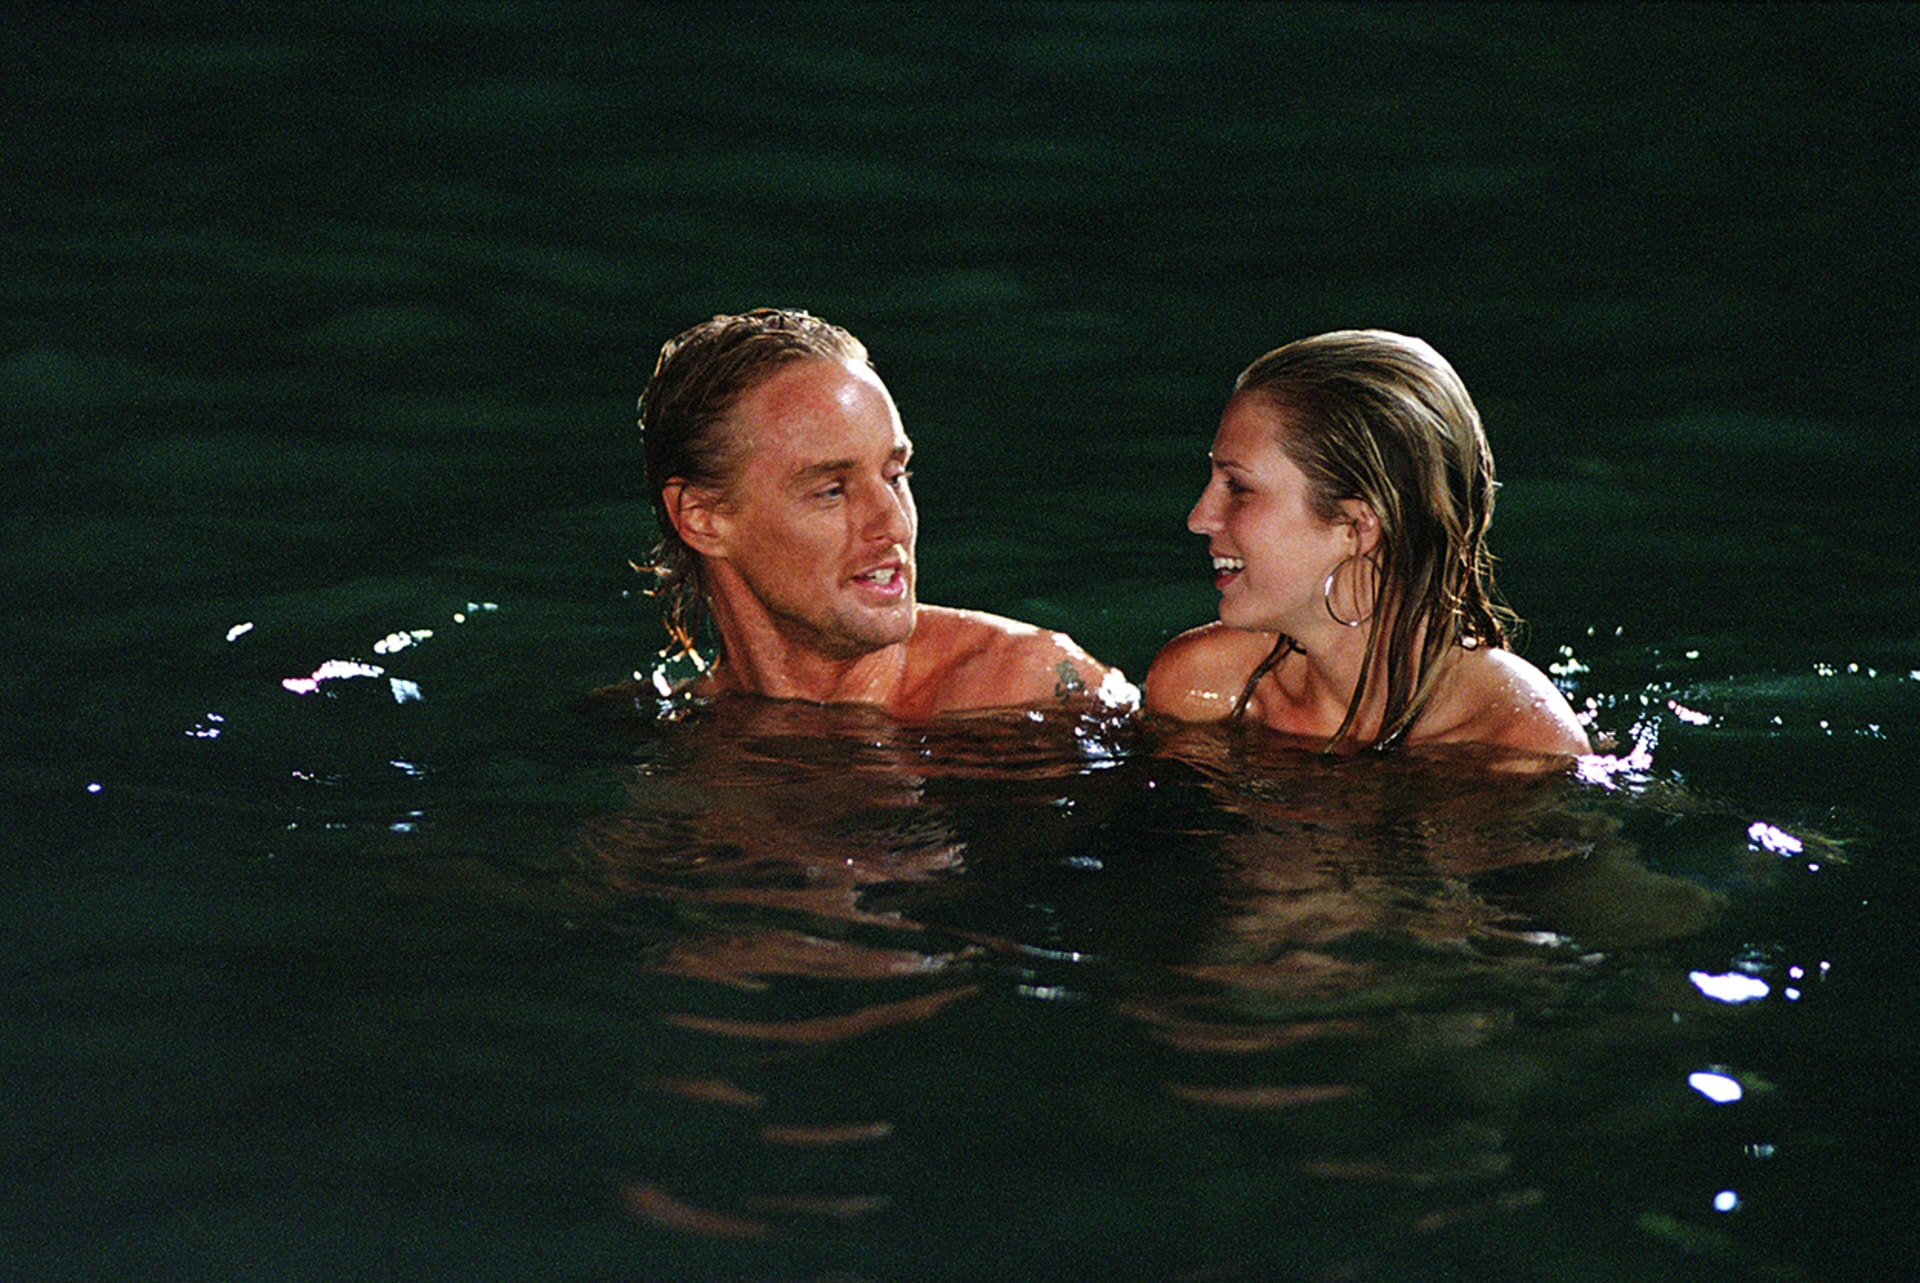 owen wilson and sara foster taking a swim in the big bounce